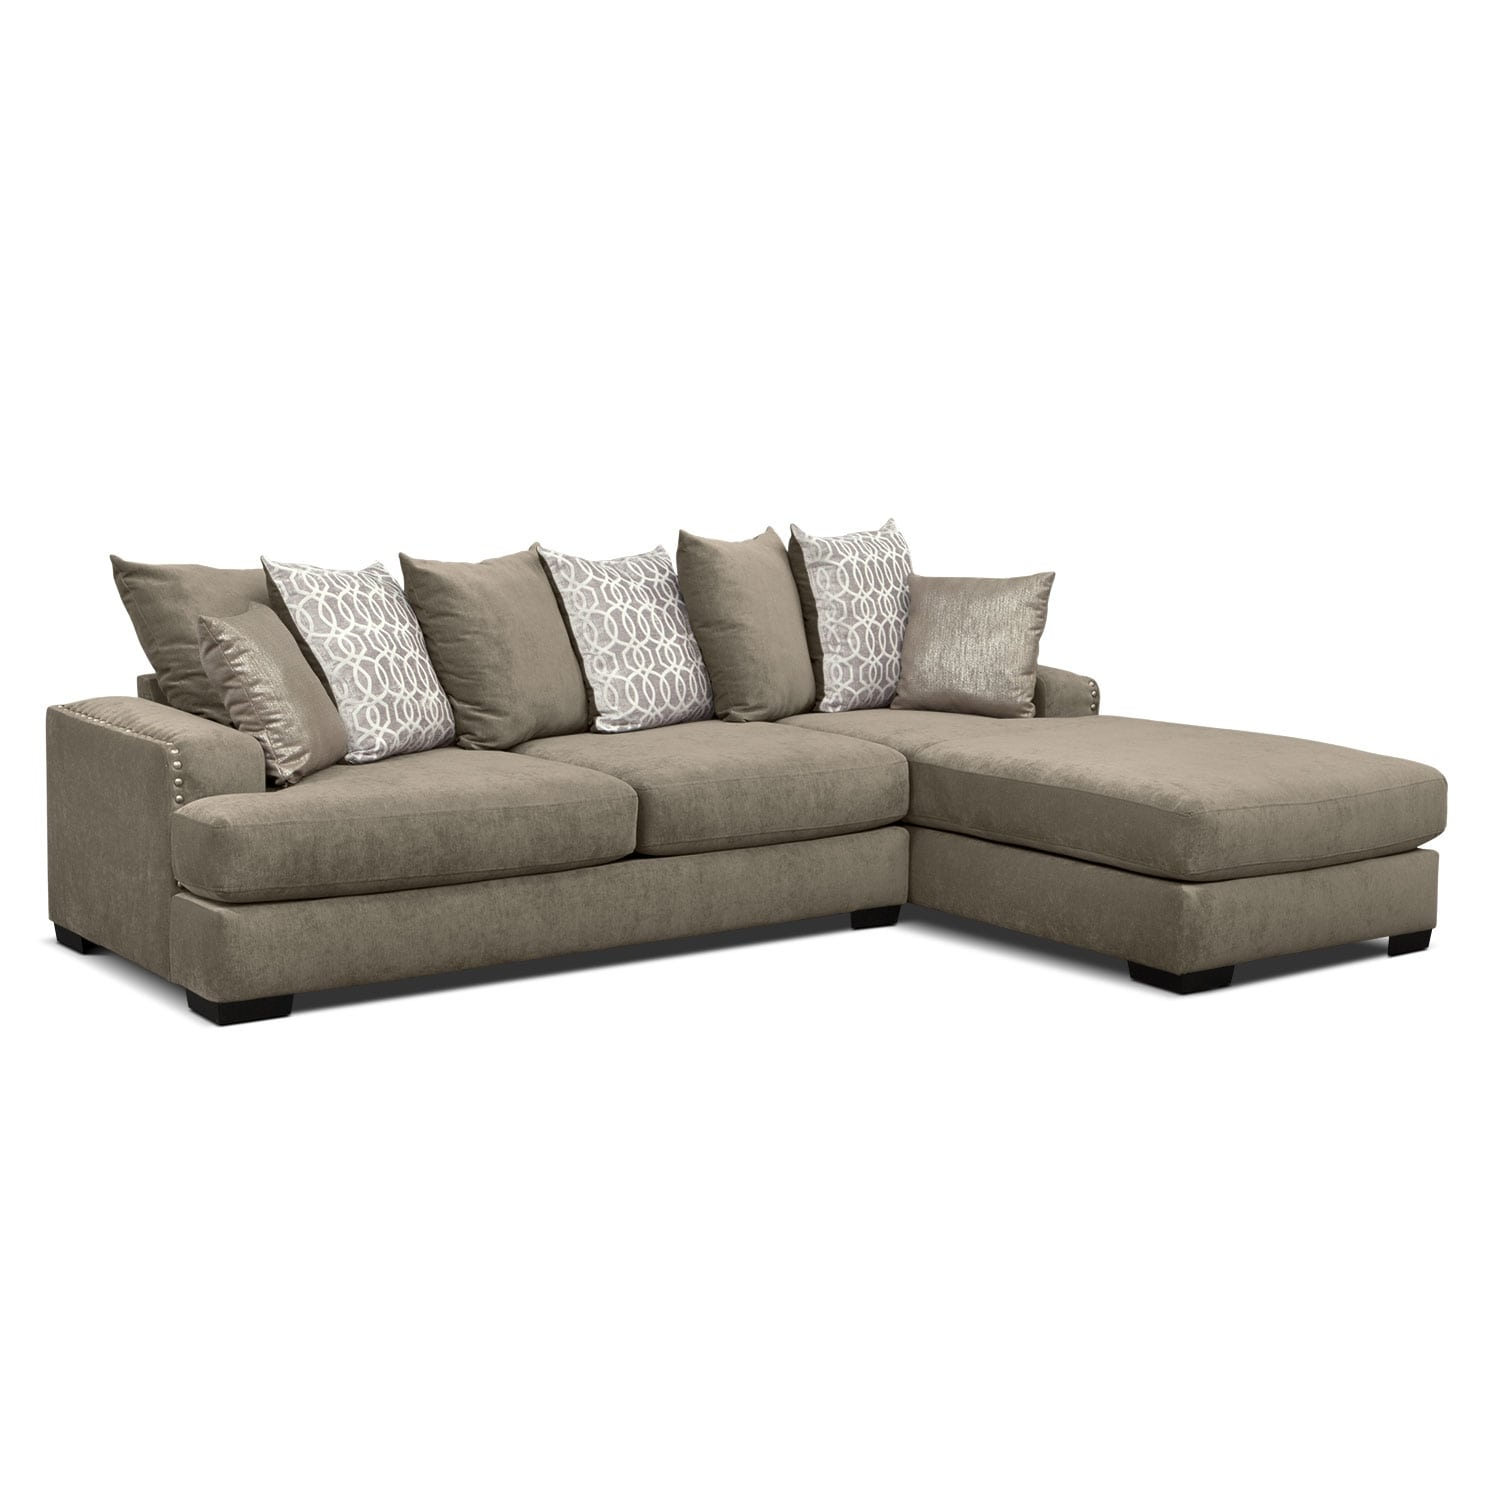 Tempo 2 Pc. Sectional with Right-Facing Chaise